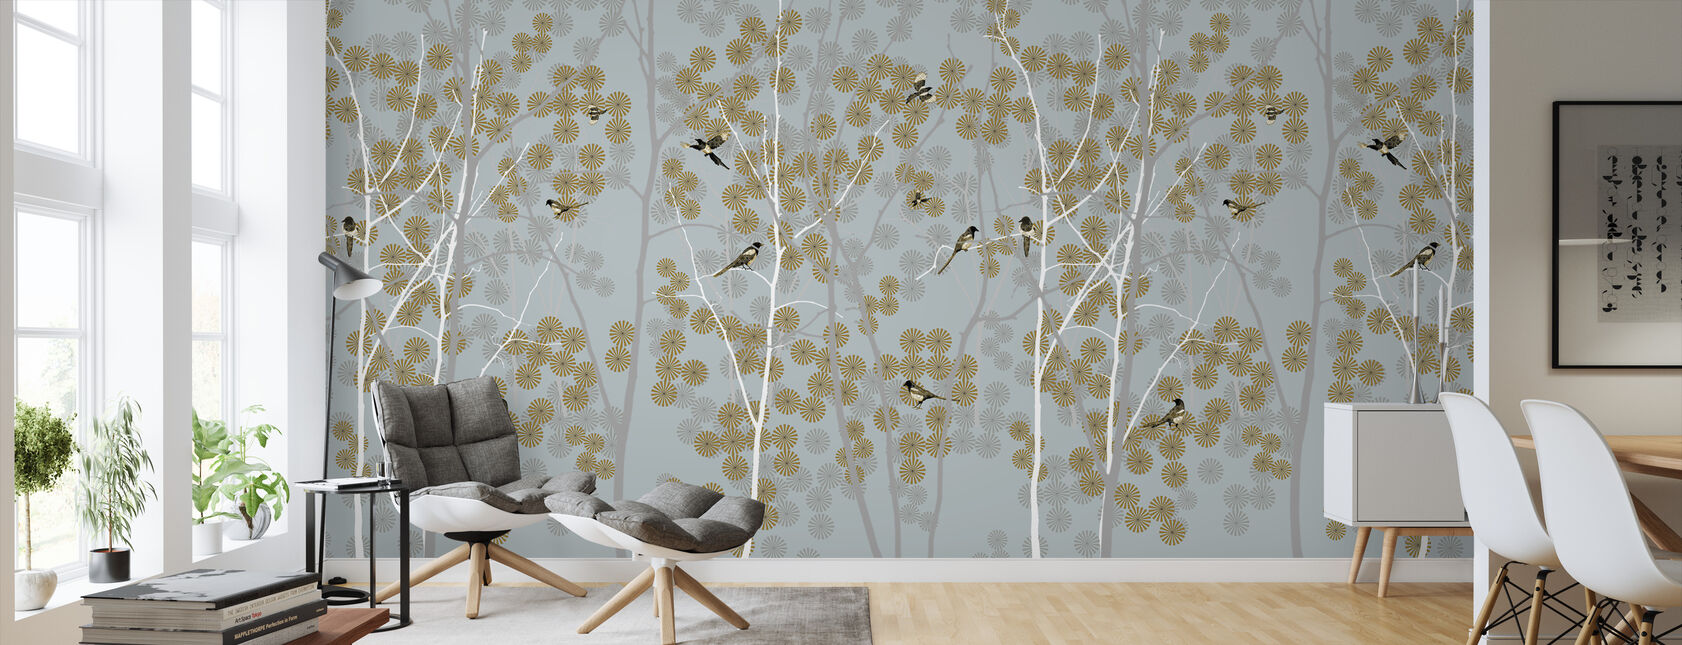 April Magpie - Wallpaper - Living Room